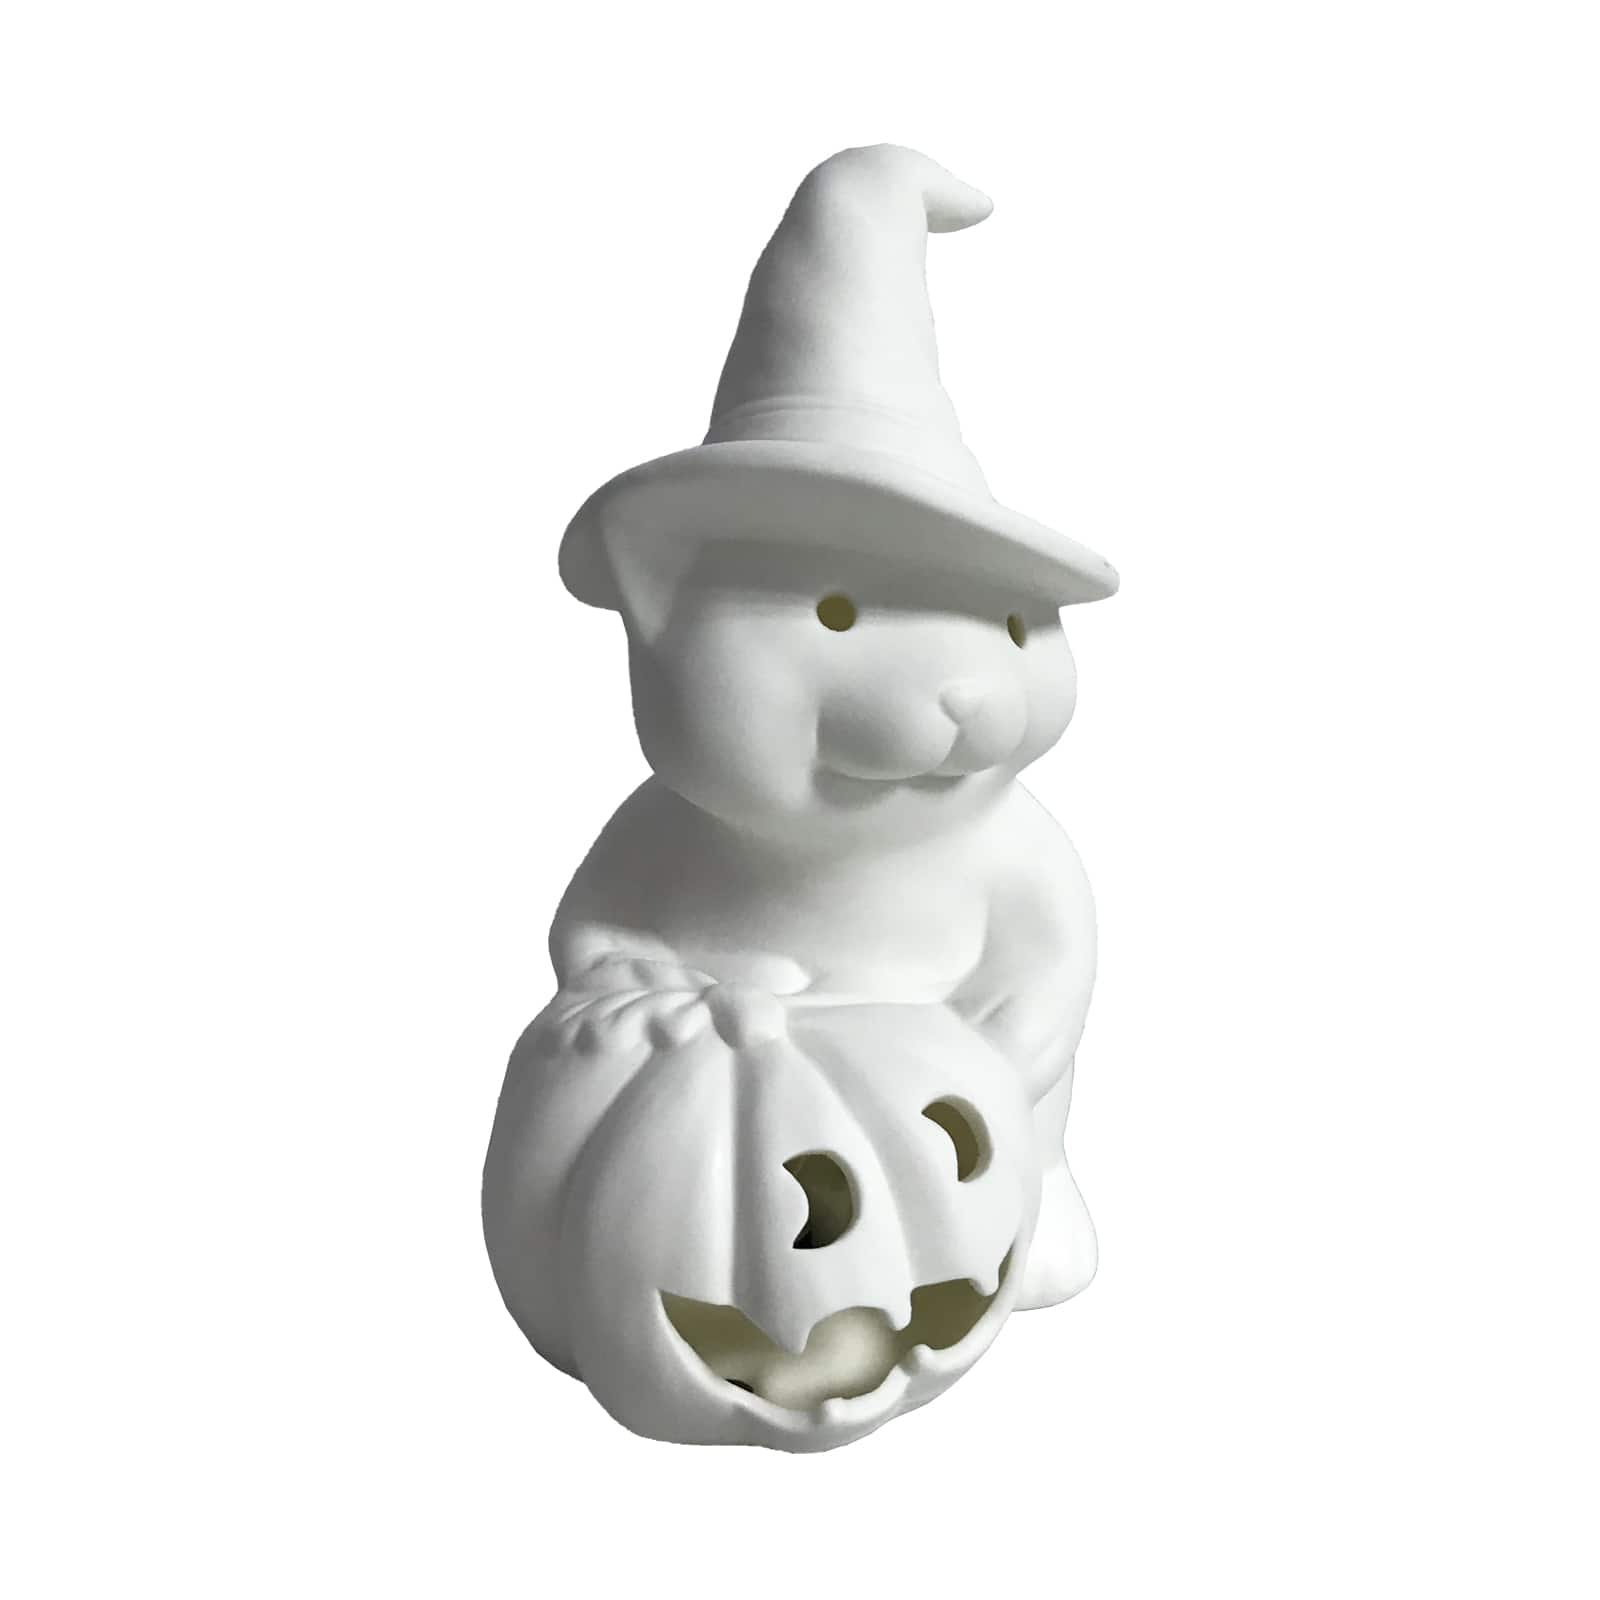 7.16'' Cat With Hat Ceramic Led Accent By Art Minds™ by Artminds